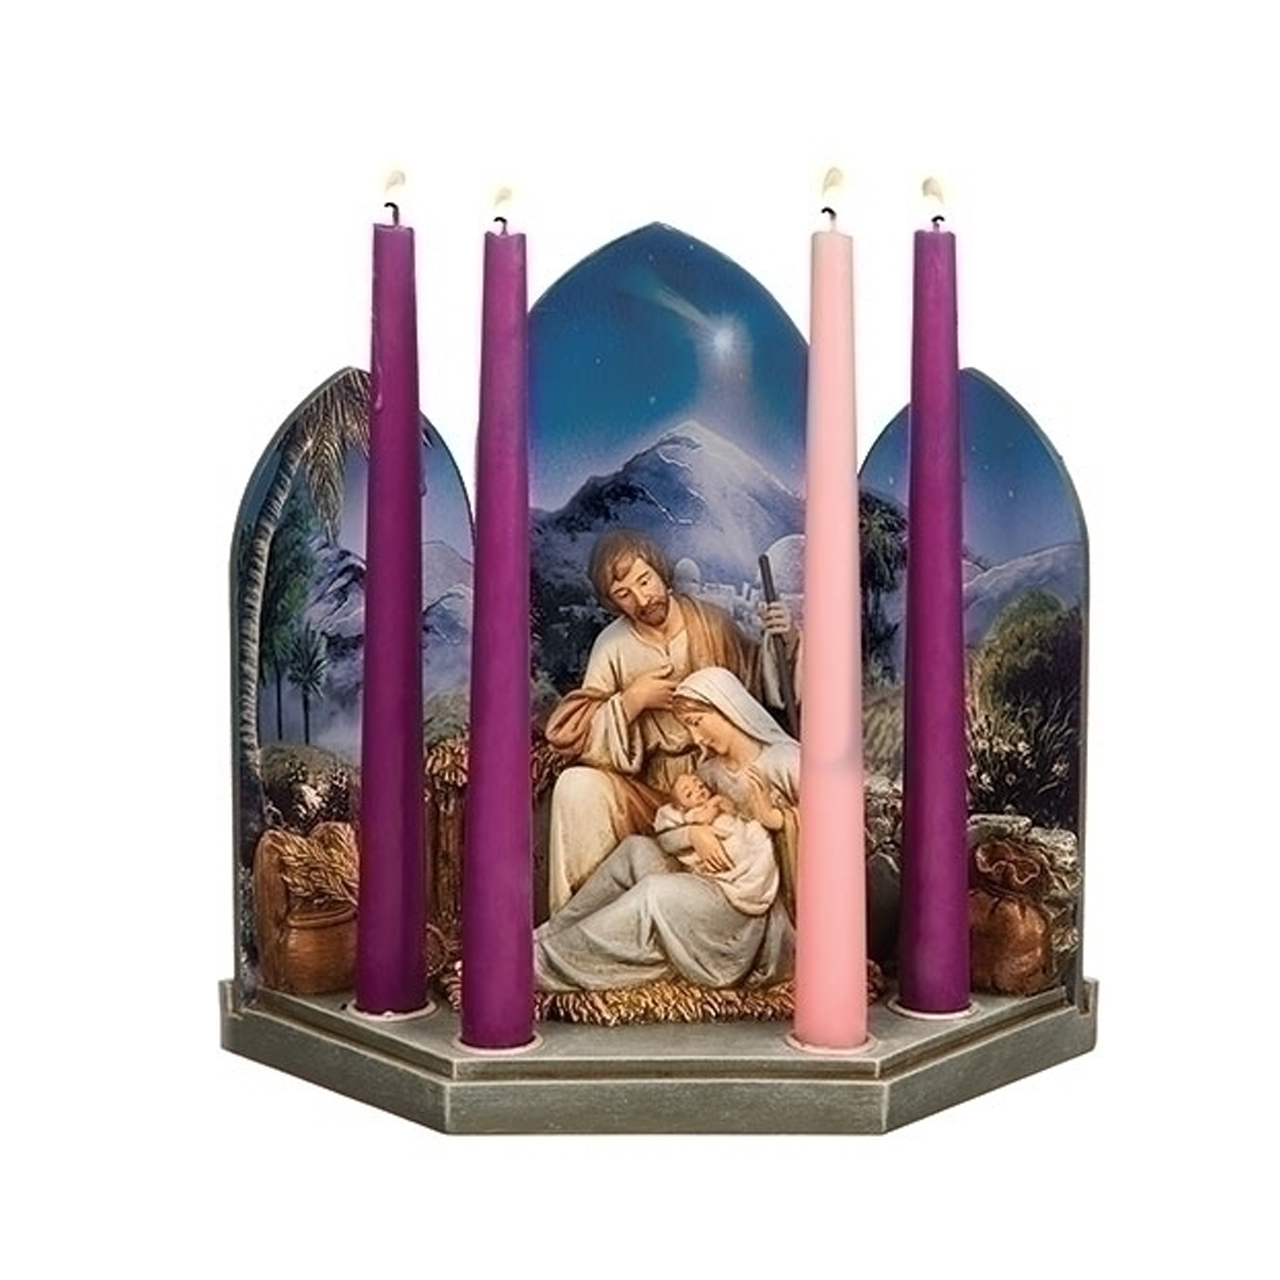 Holy Family Advent Candleholder Triptych Background Resin 9 3 4 633285 F C Ziegler Company